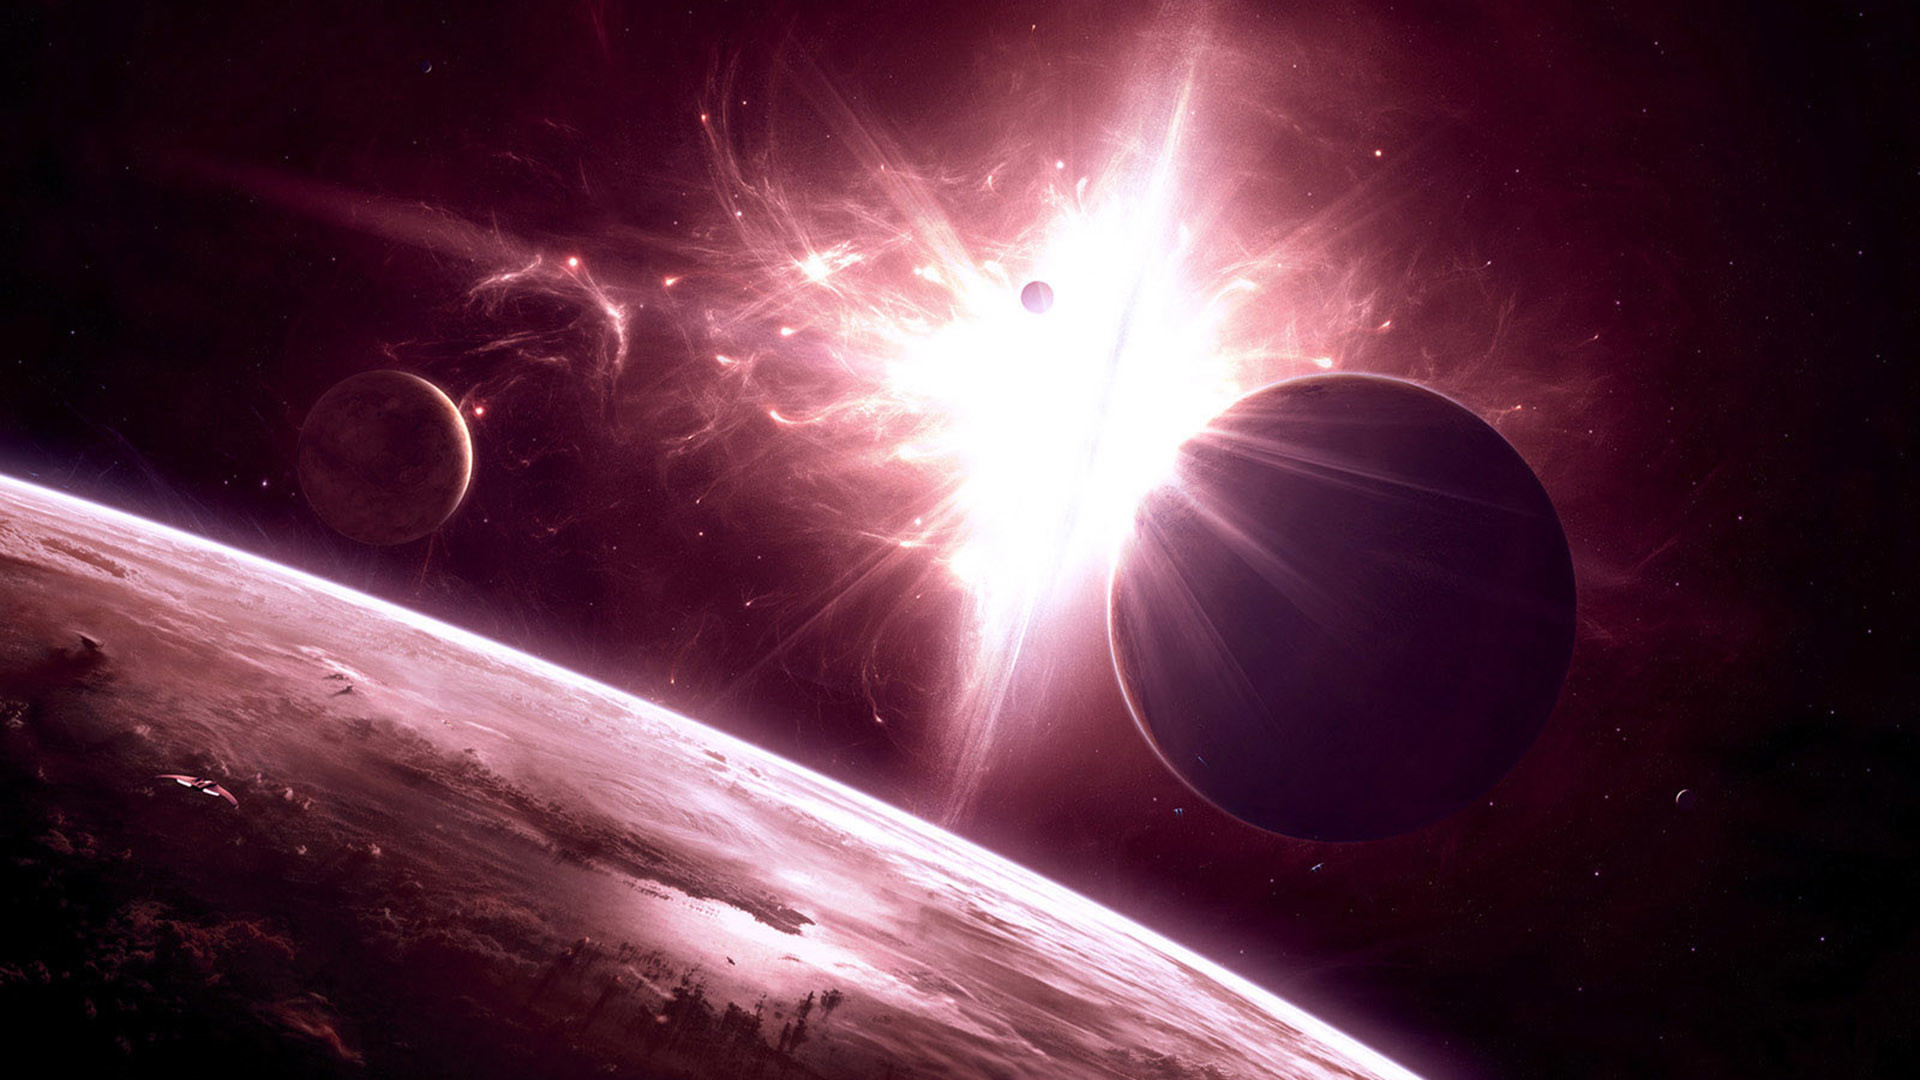 File Name: #891910 Space Browser Themes & Desktop Wallpapers